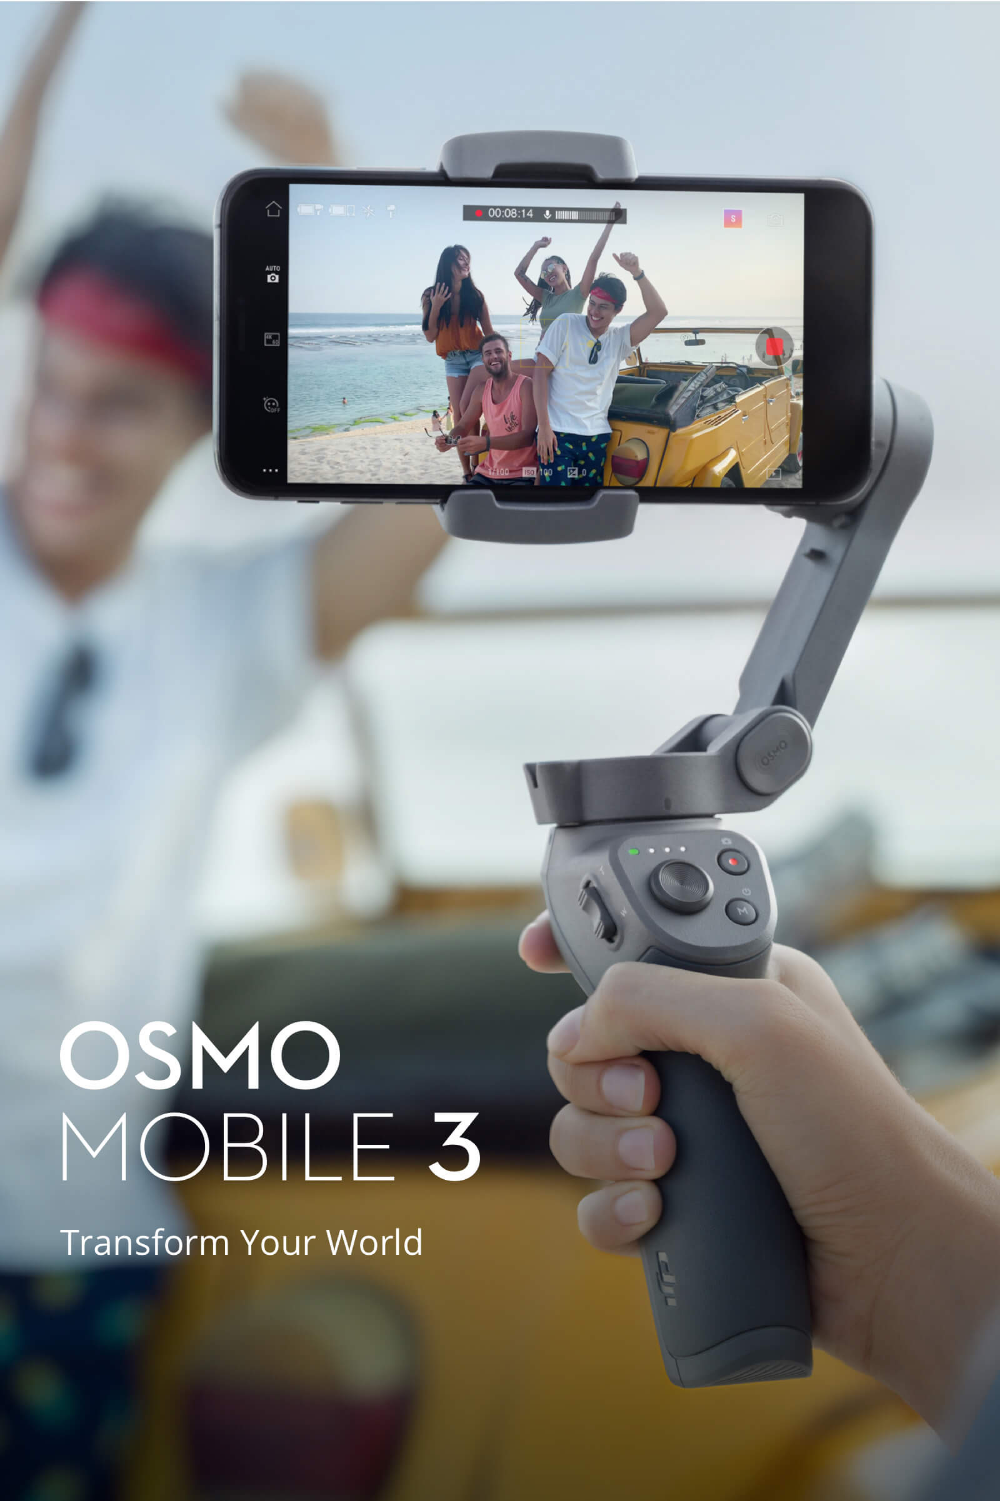 Pin by R. Philip Stevenson on Gadgets Dji osmo mobile